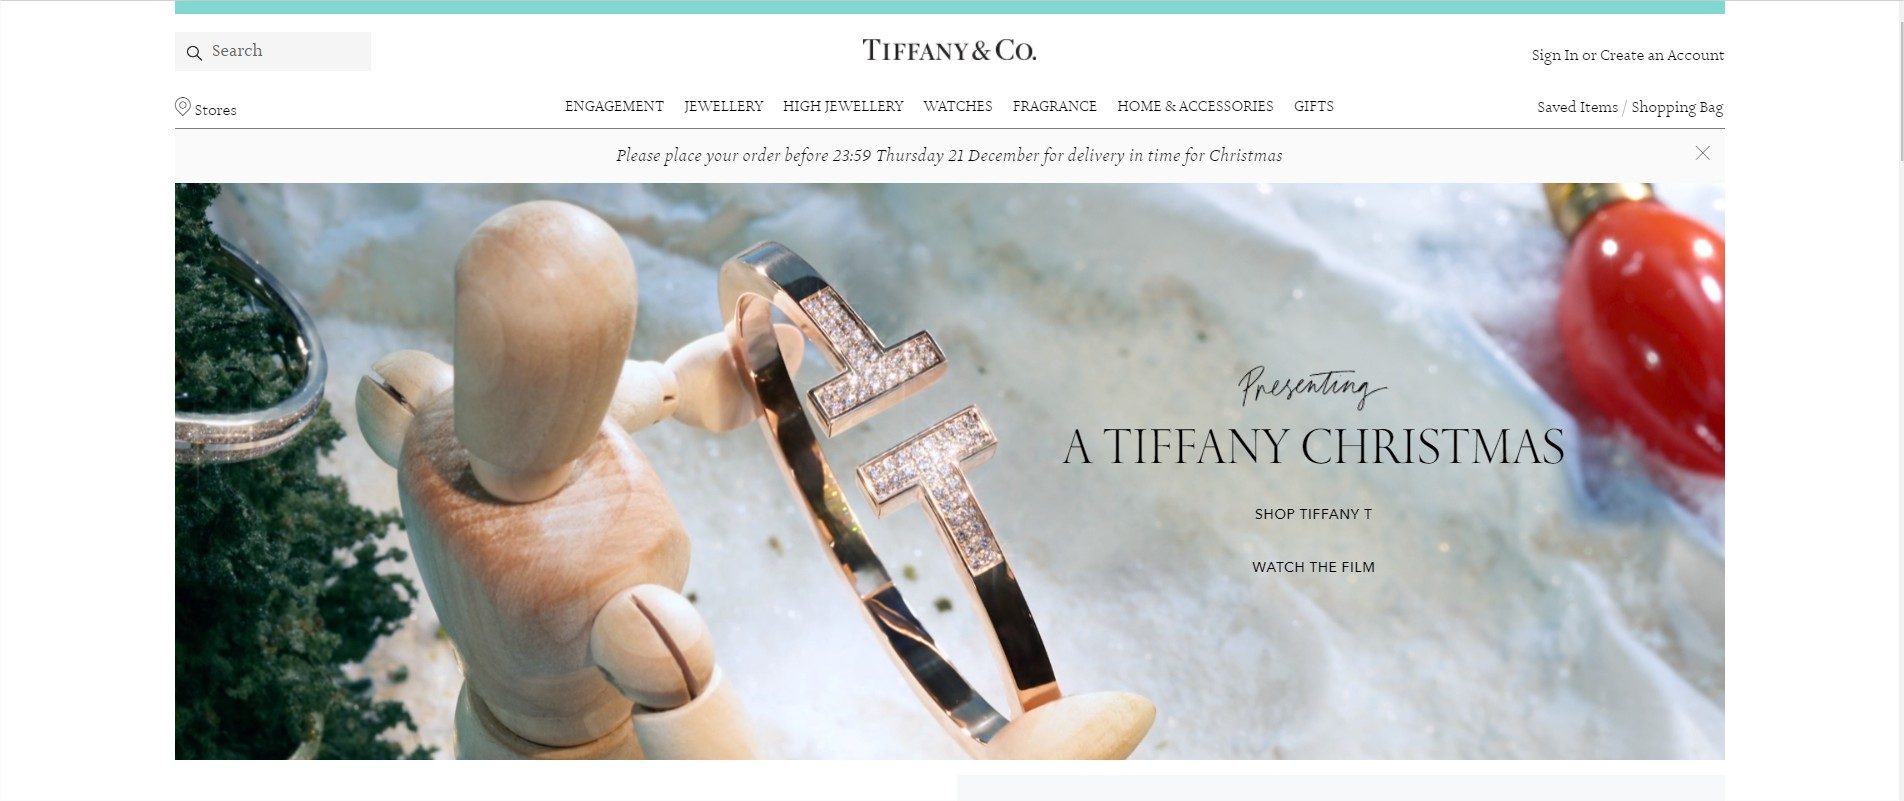 Tiffany & Co. Official  Luxury Jewellery, Gifts & Accessories Since 1837. - Google Chrome.jpg